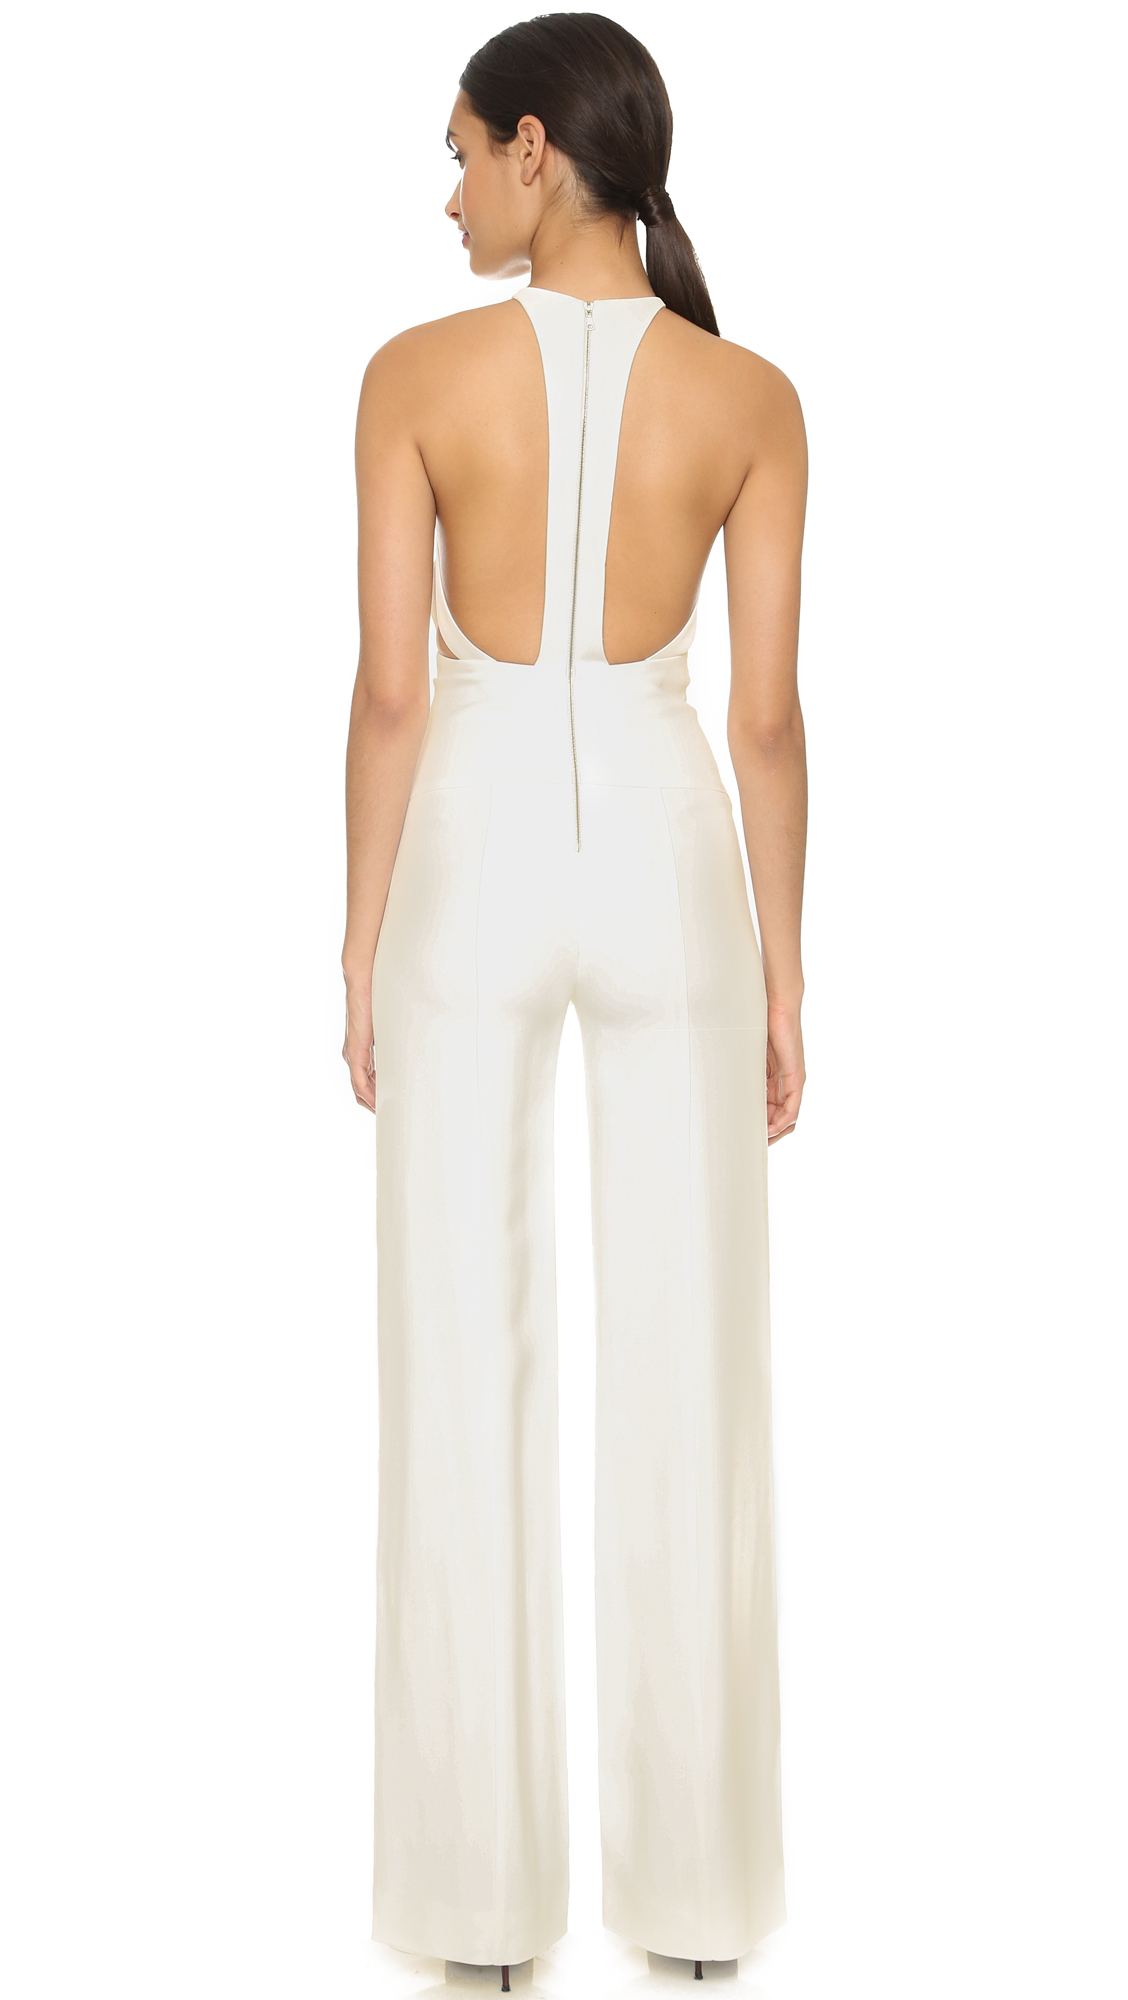 417d574f4c3 Lyst - Narciso Rodriguez Harness Back Jumpsuit - White in White